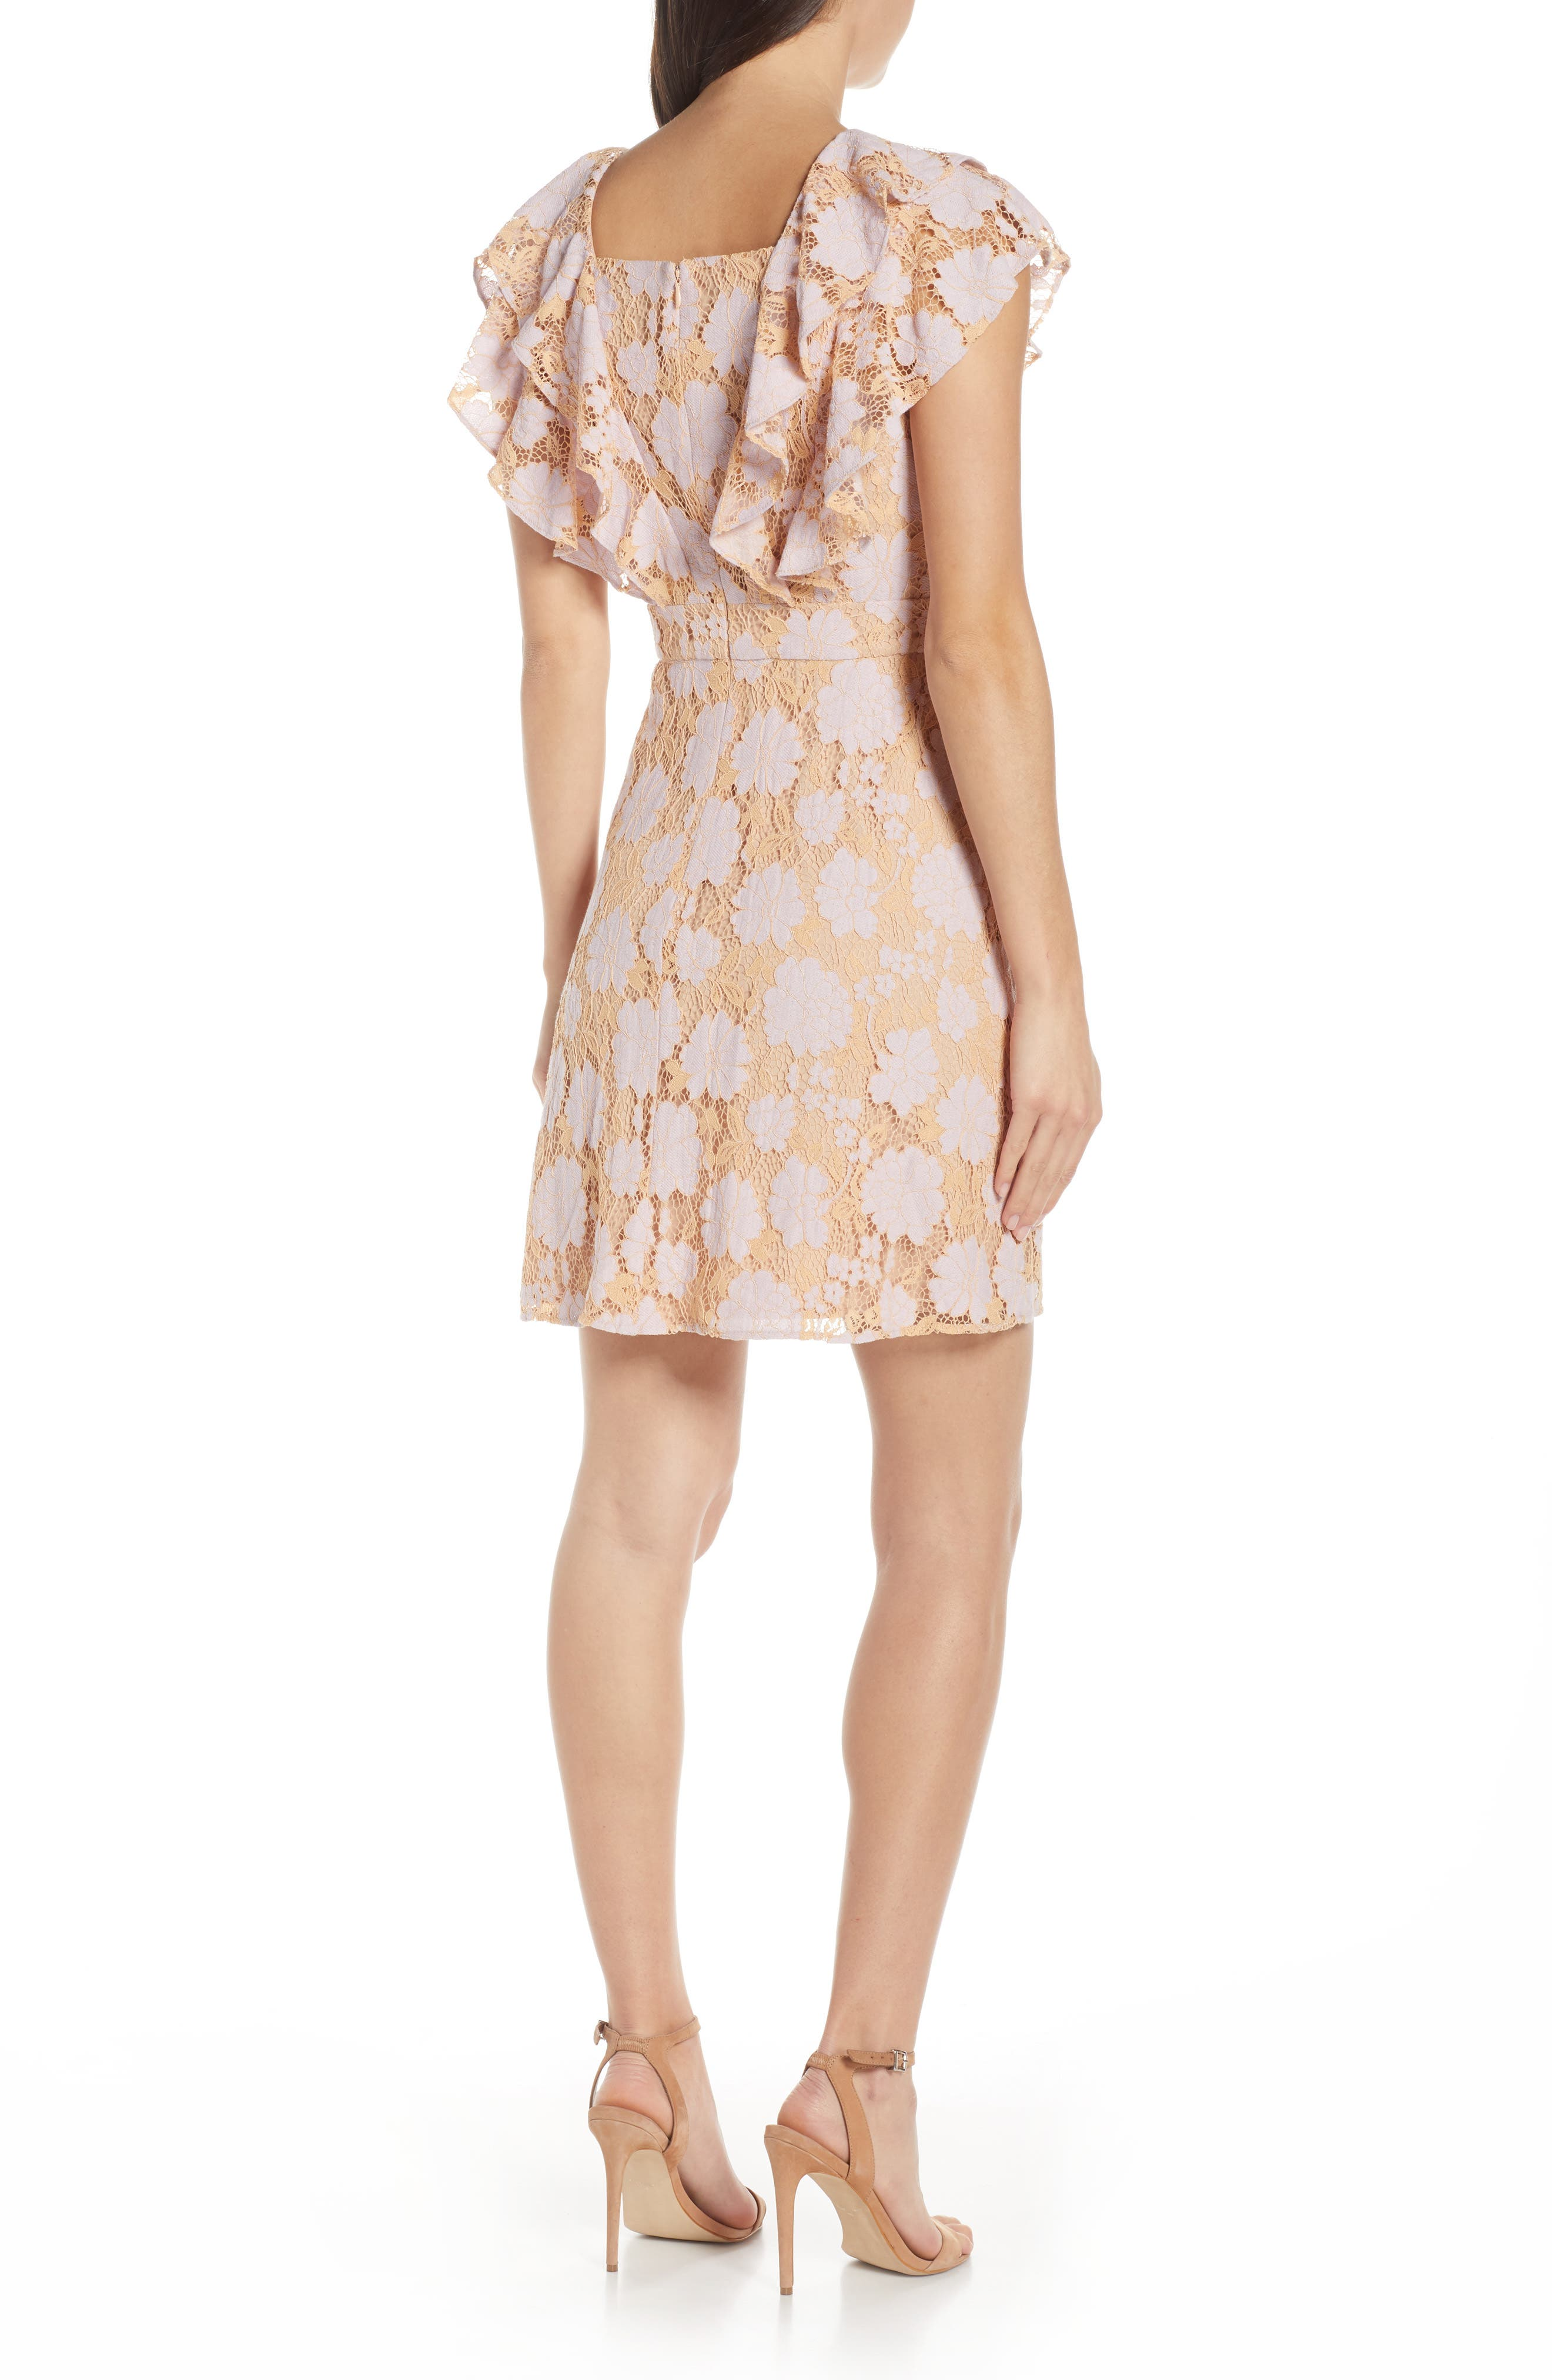 CHARLES HENRY, Ruffle Lace Minidress, Alternate thumbnail 2, color, LILAC-PINK LACE